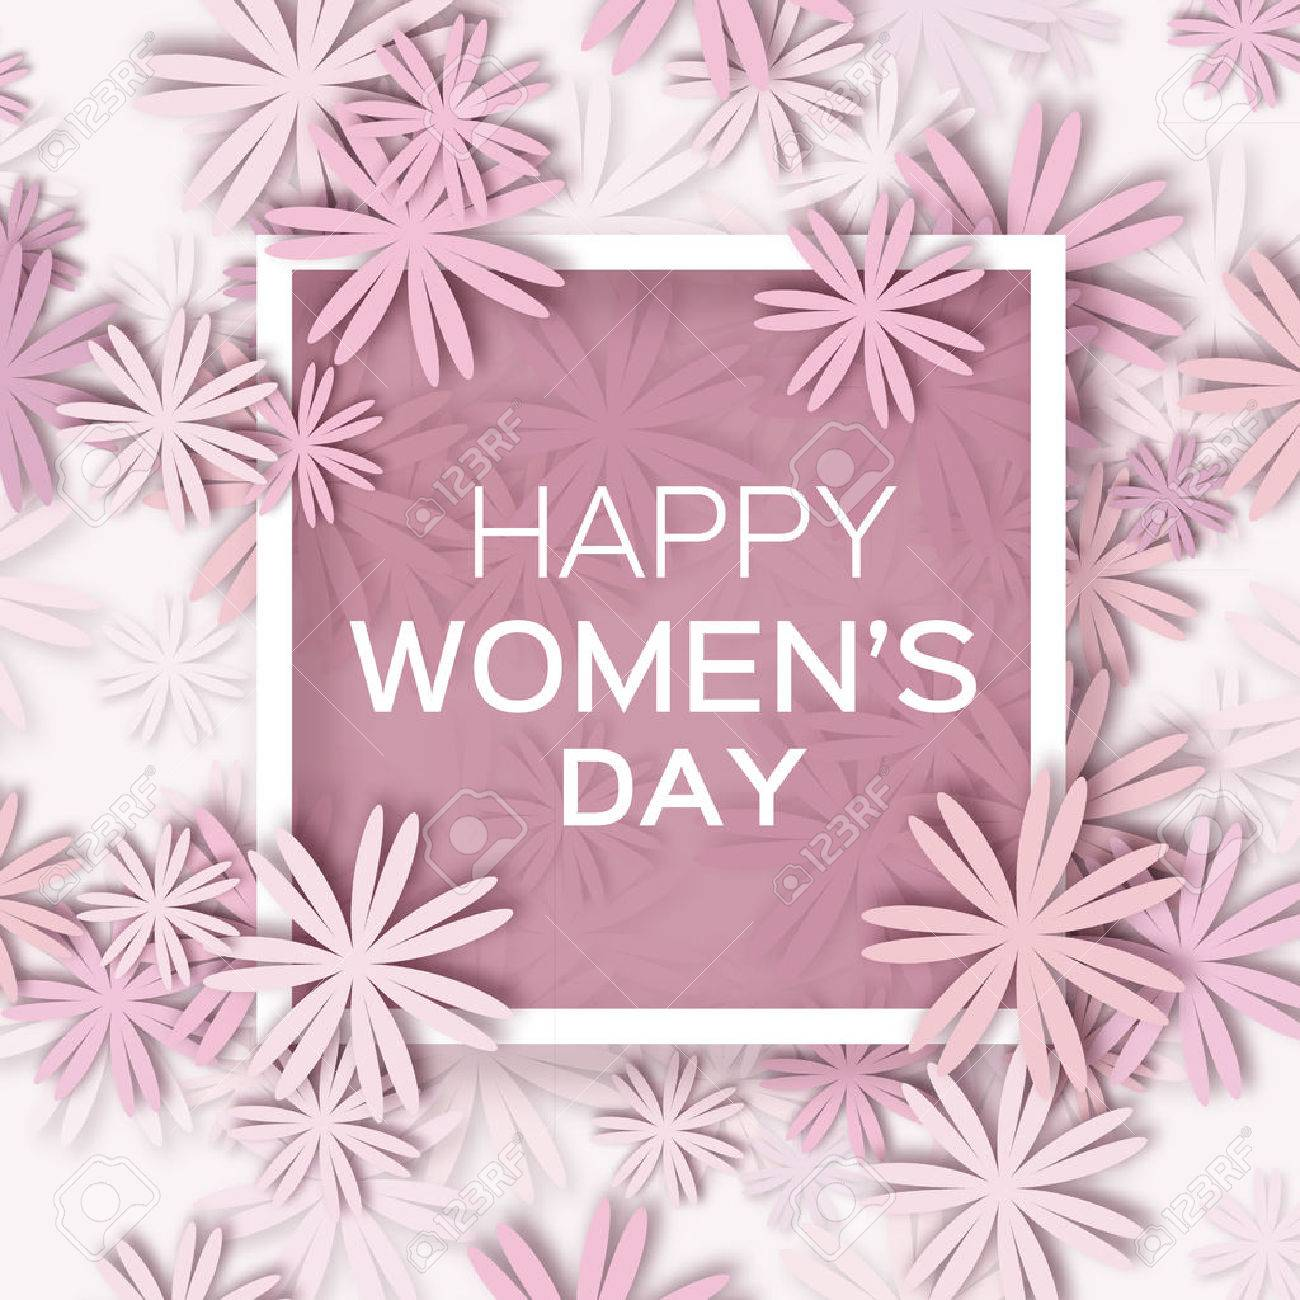 Abstract Pastel Floral Greeting card - International Happy Women's Day - 8 March holiday background with paper cut Frame Flowers. Trendy Design Template. Vector illustration. - 52885874